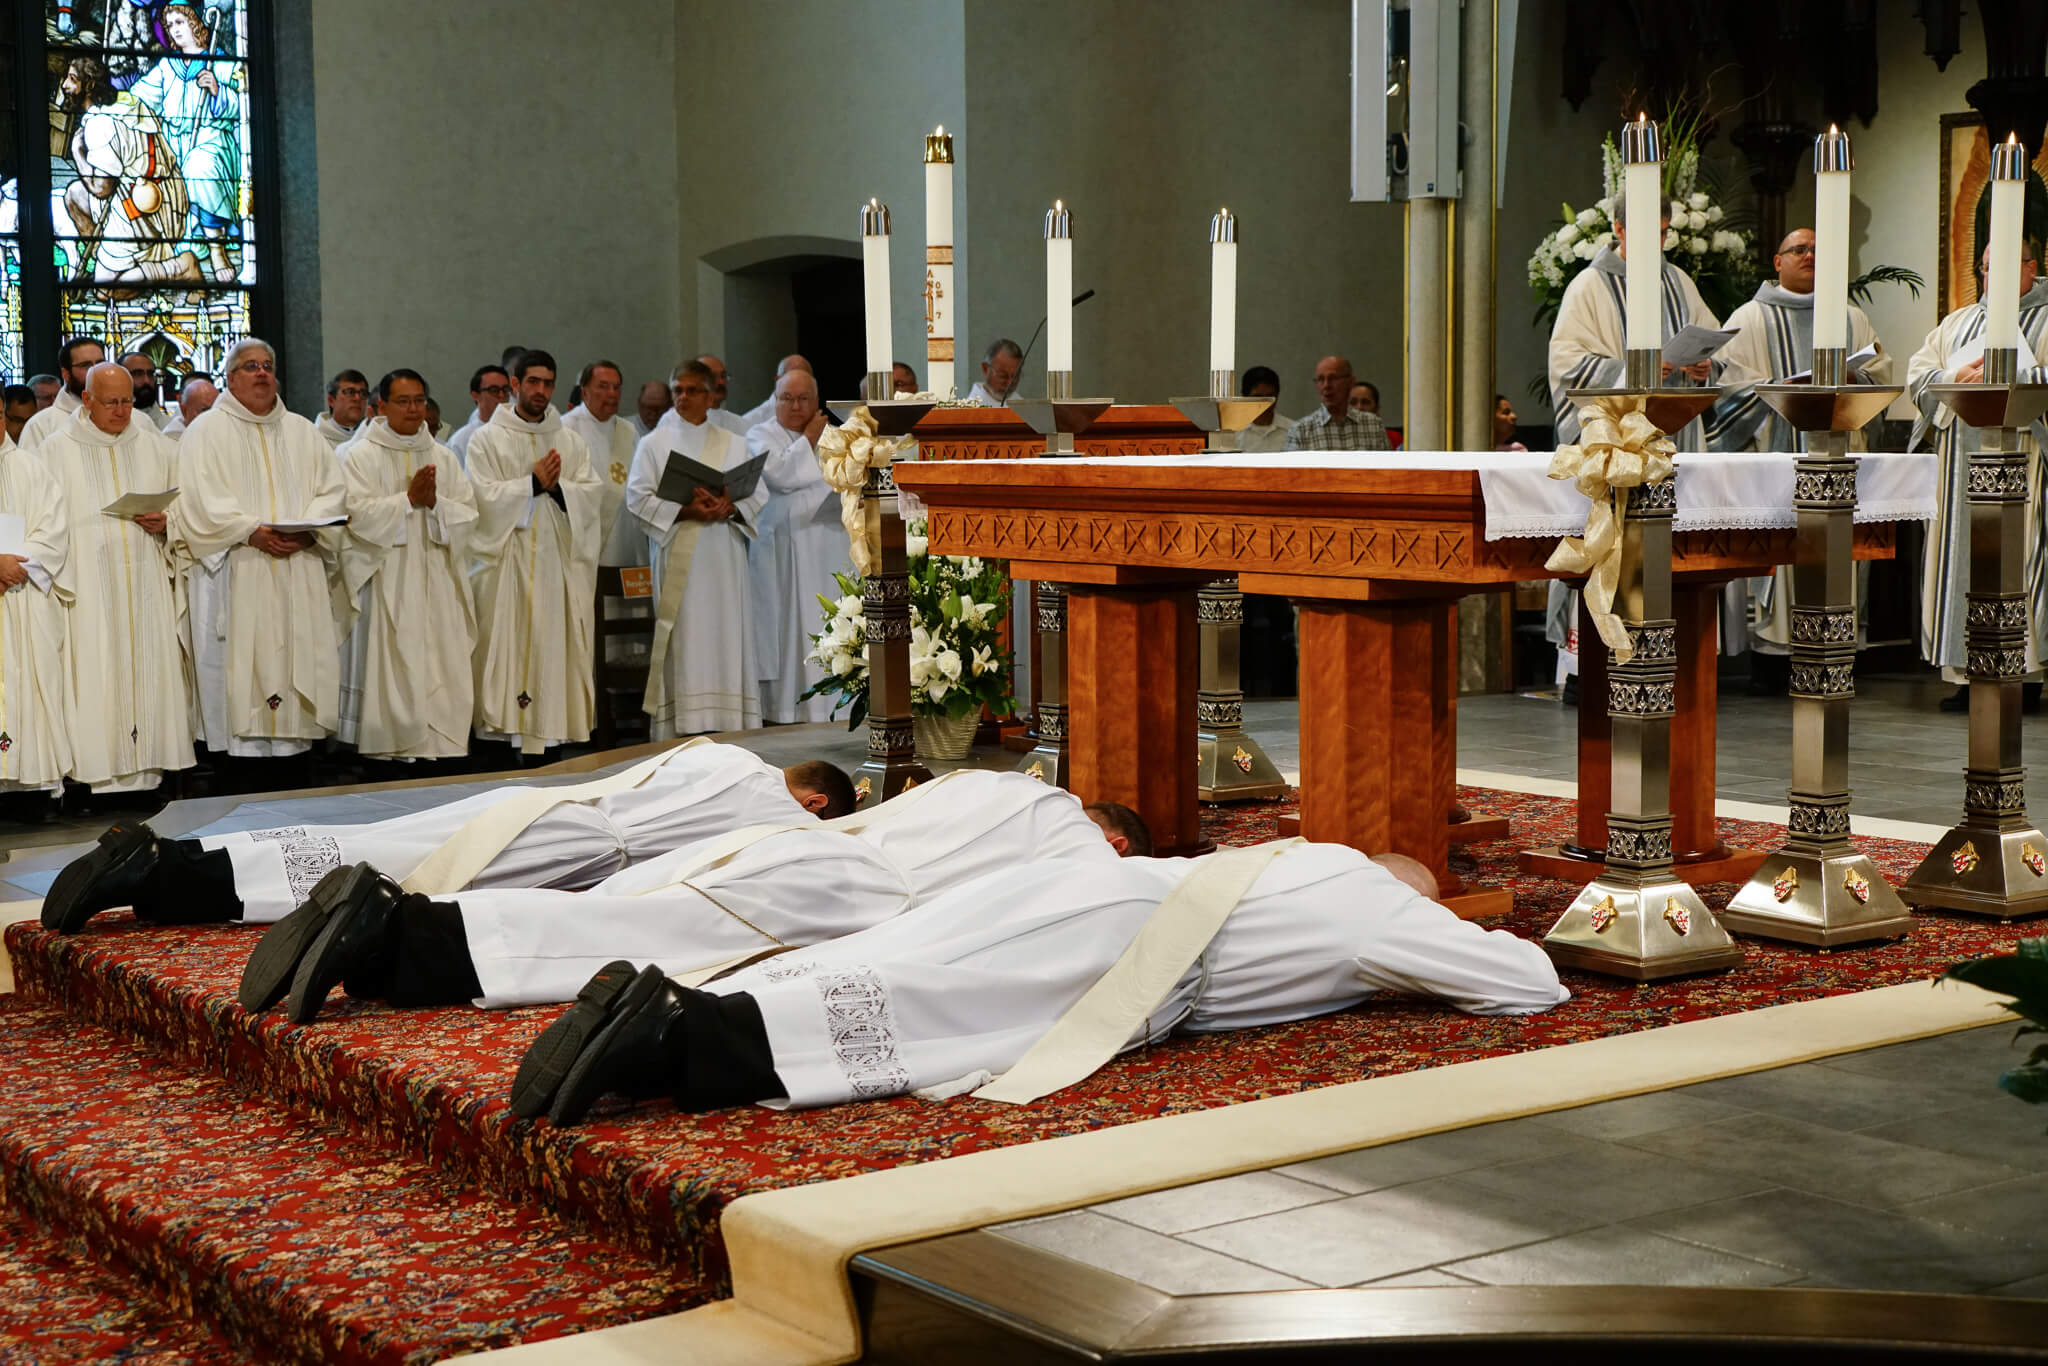 The men to be ordained lay prostrate on the cathedral altar